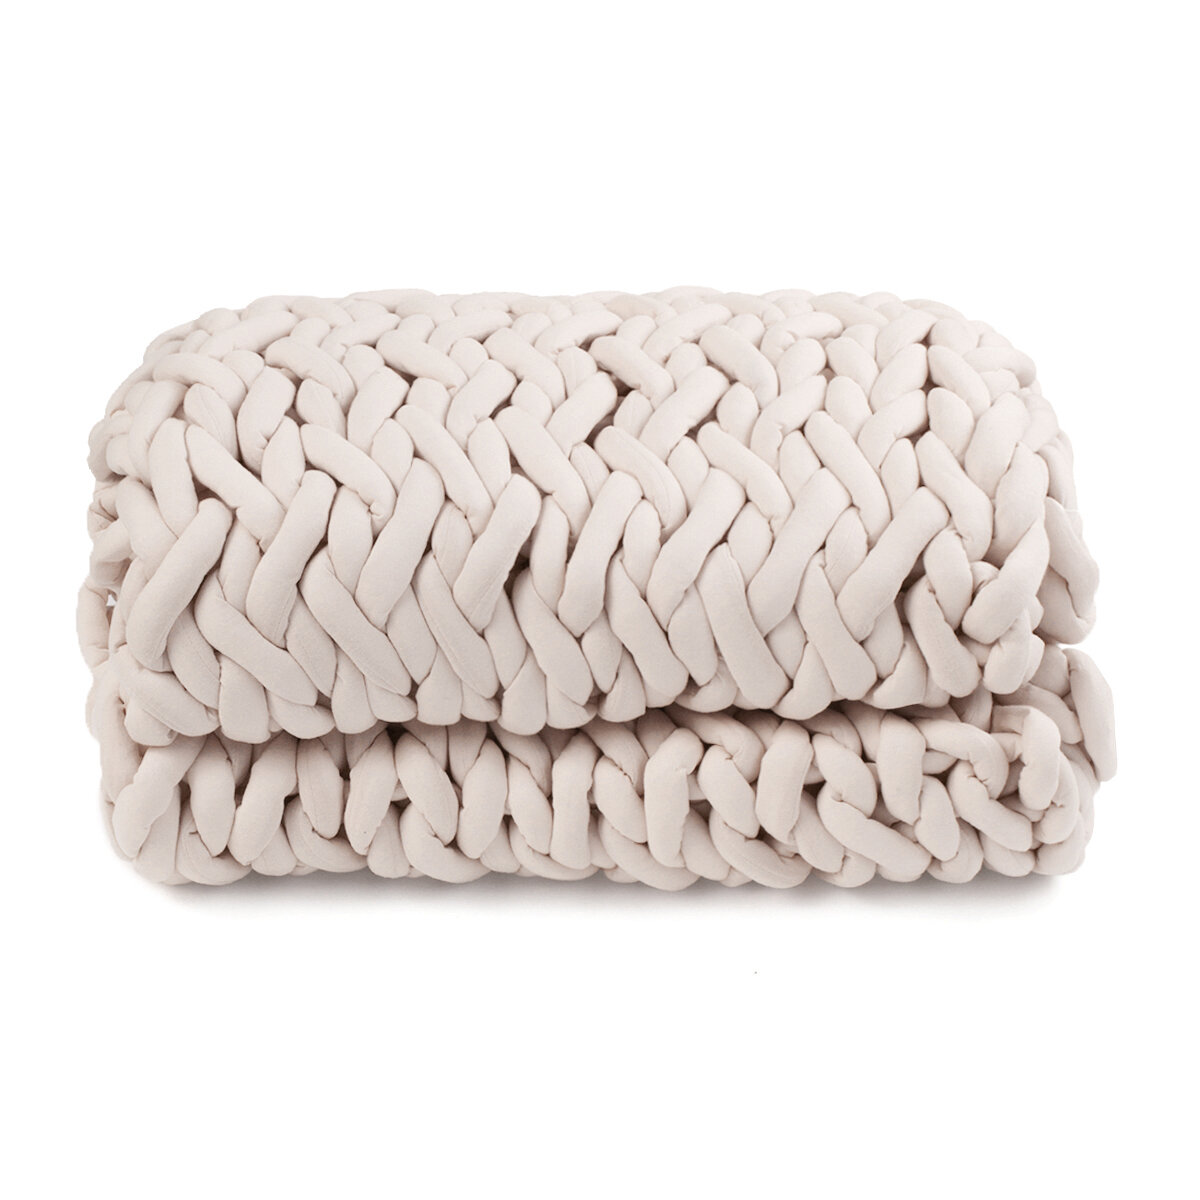 100x120cm Handmade Knitted Blankets Soft Warm Thick Line Cotton Throw Blankets - 2